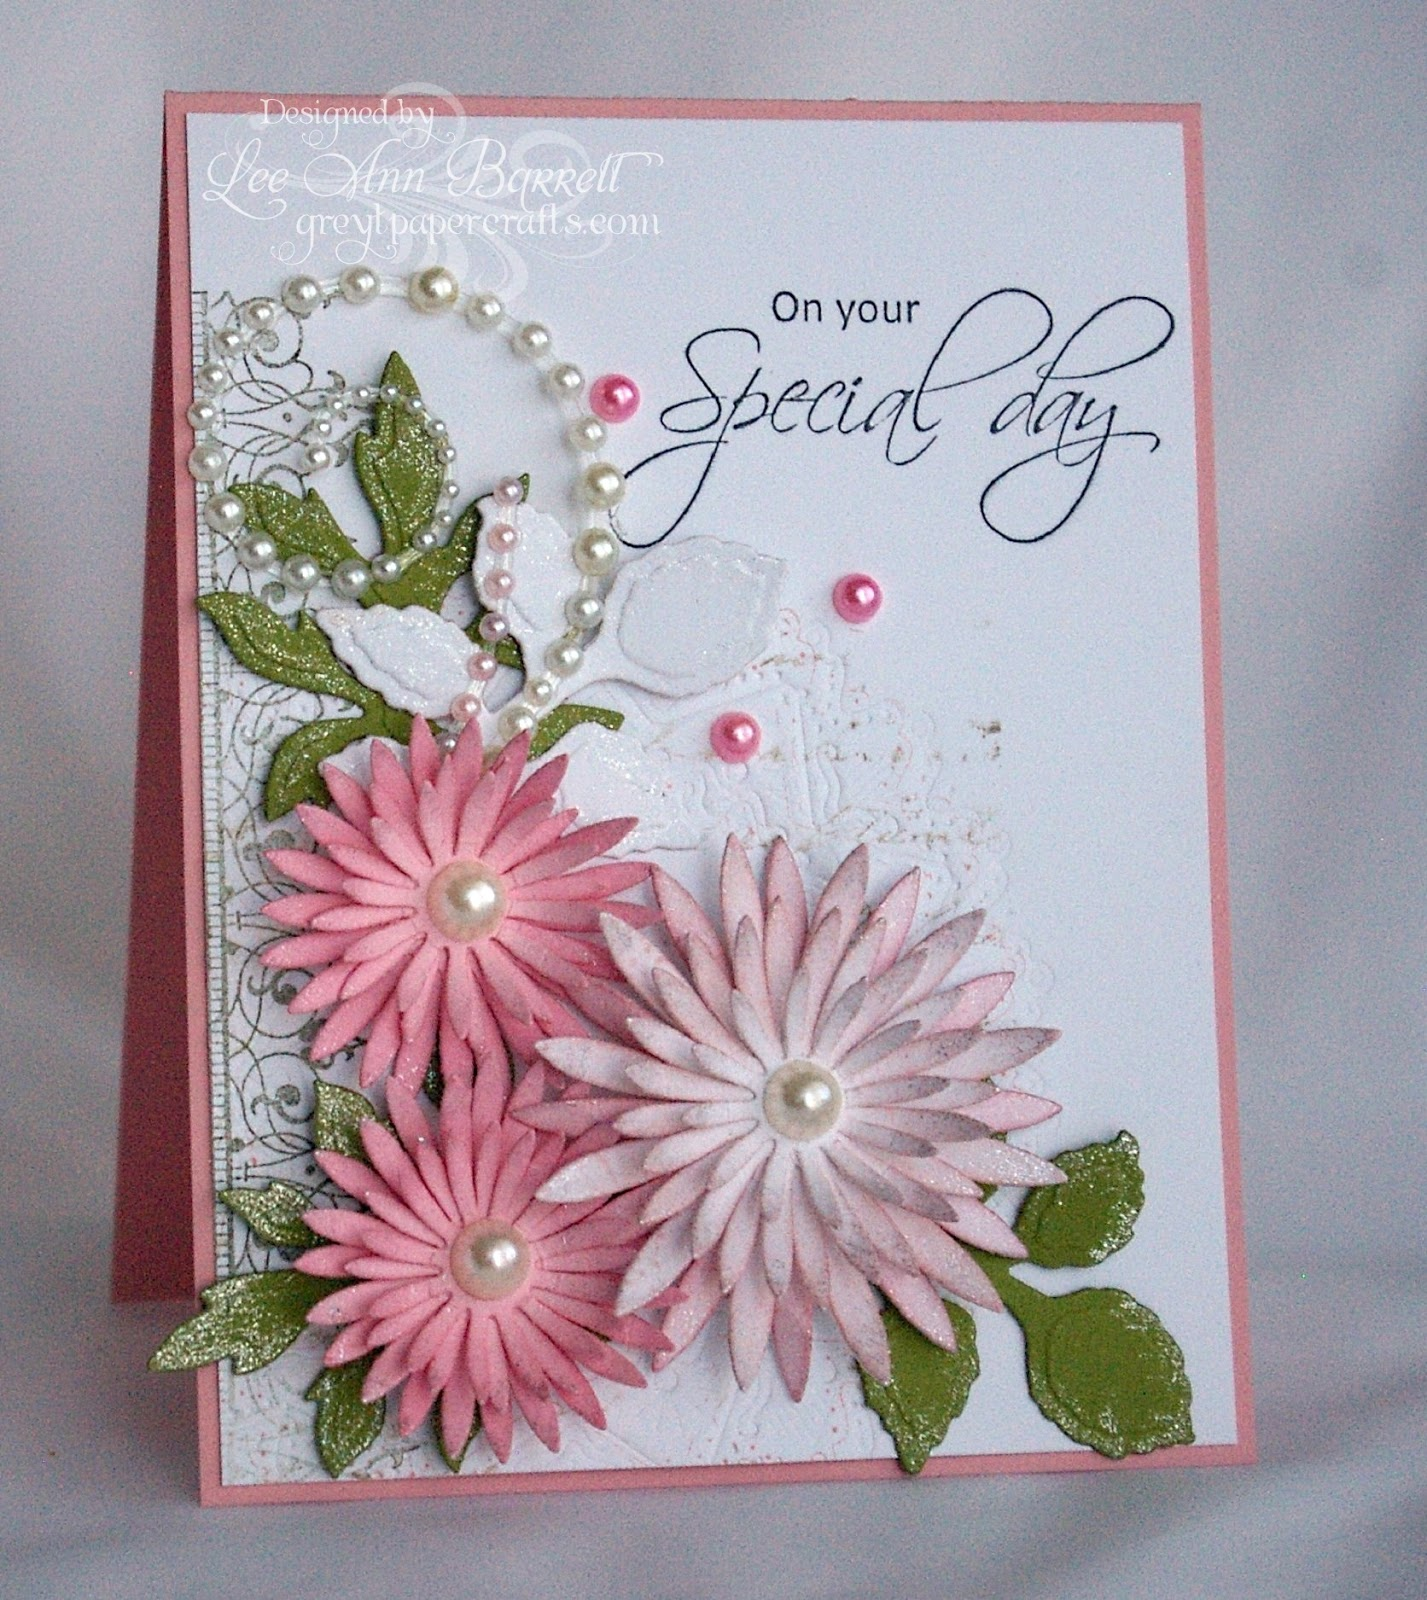 Greyt Paper Crafts Flowers And The Heartfelt Creations Design Team